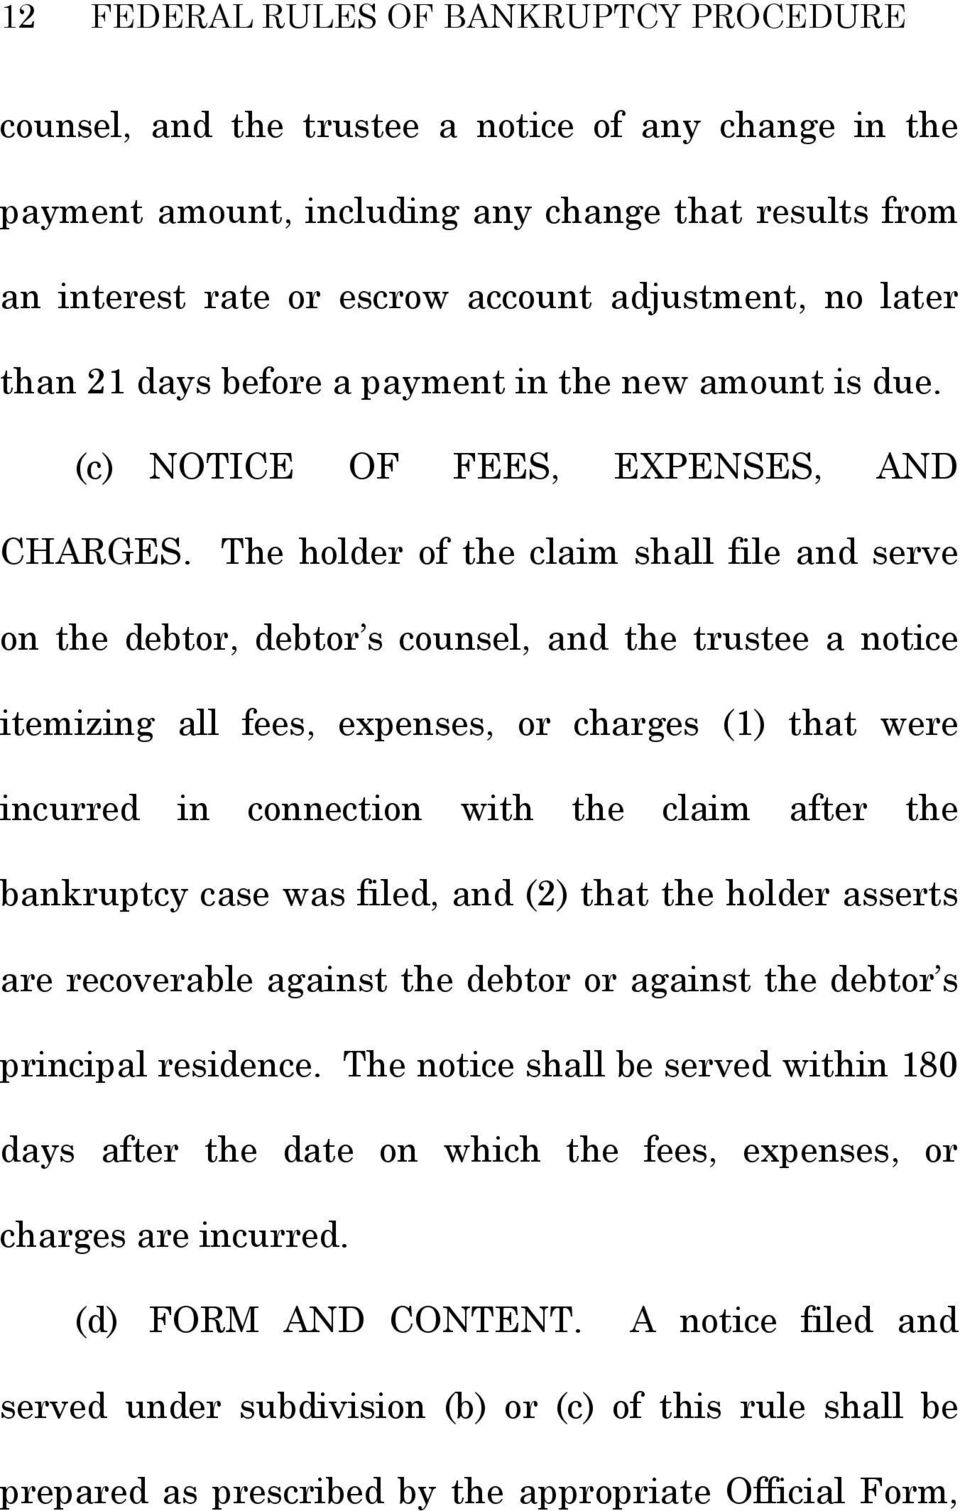 The holder of the claim shall file and serve on the debtor, debtor s counsel, and the trustee a notice itemizing all fees, expenses, or charges (1) that were incurred in connection with the claim